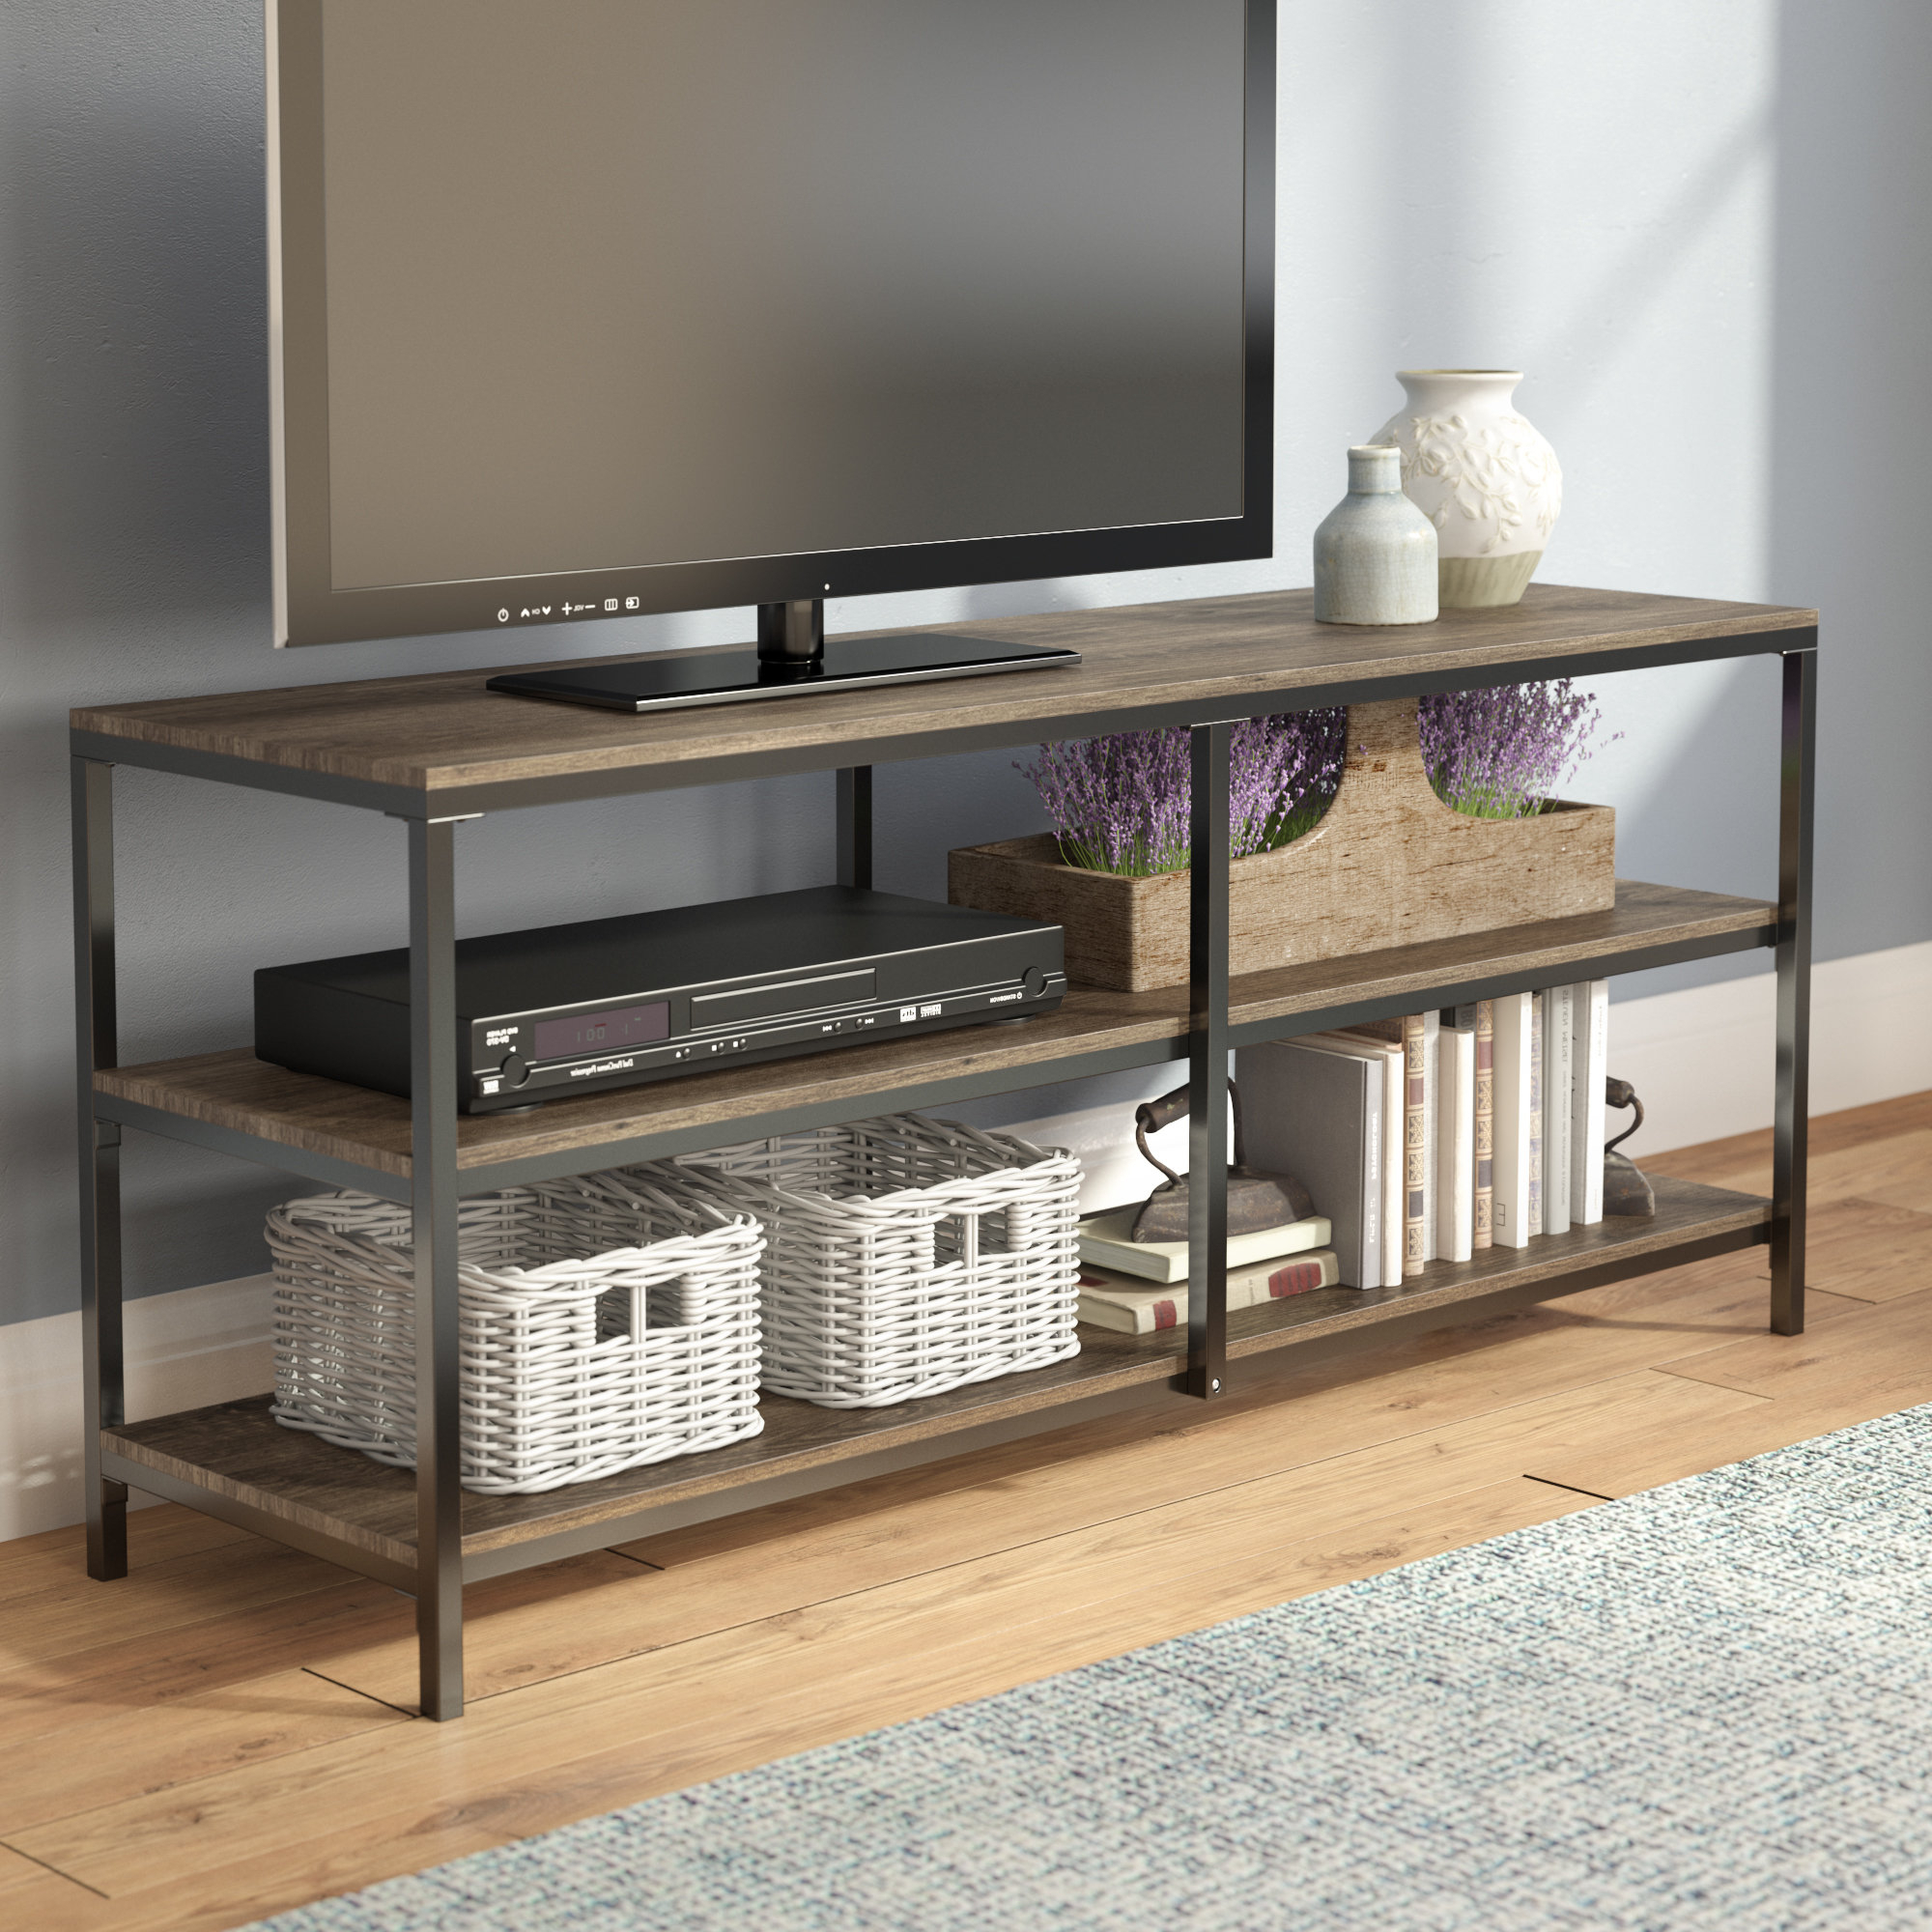 Wicker Rattan Tv Stands | Wayfair Within Century Sky 60 Inch Tv Stands (View 20 of 20)